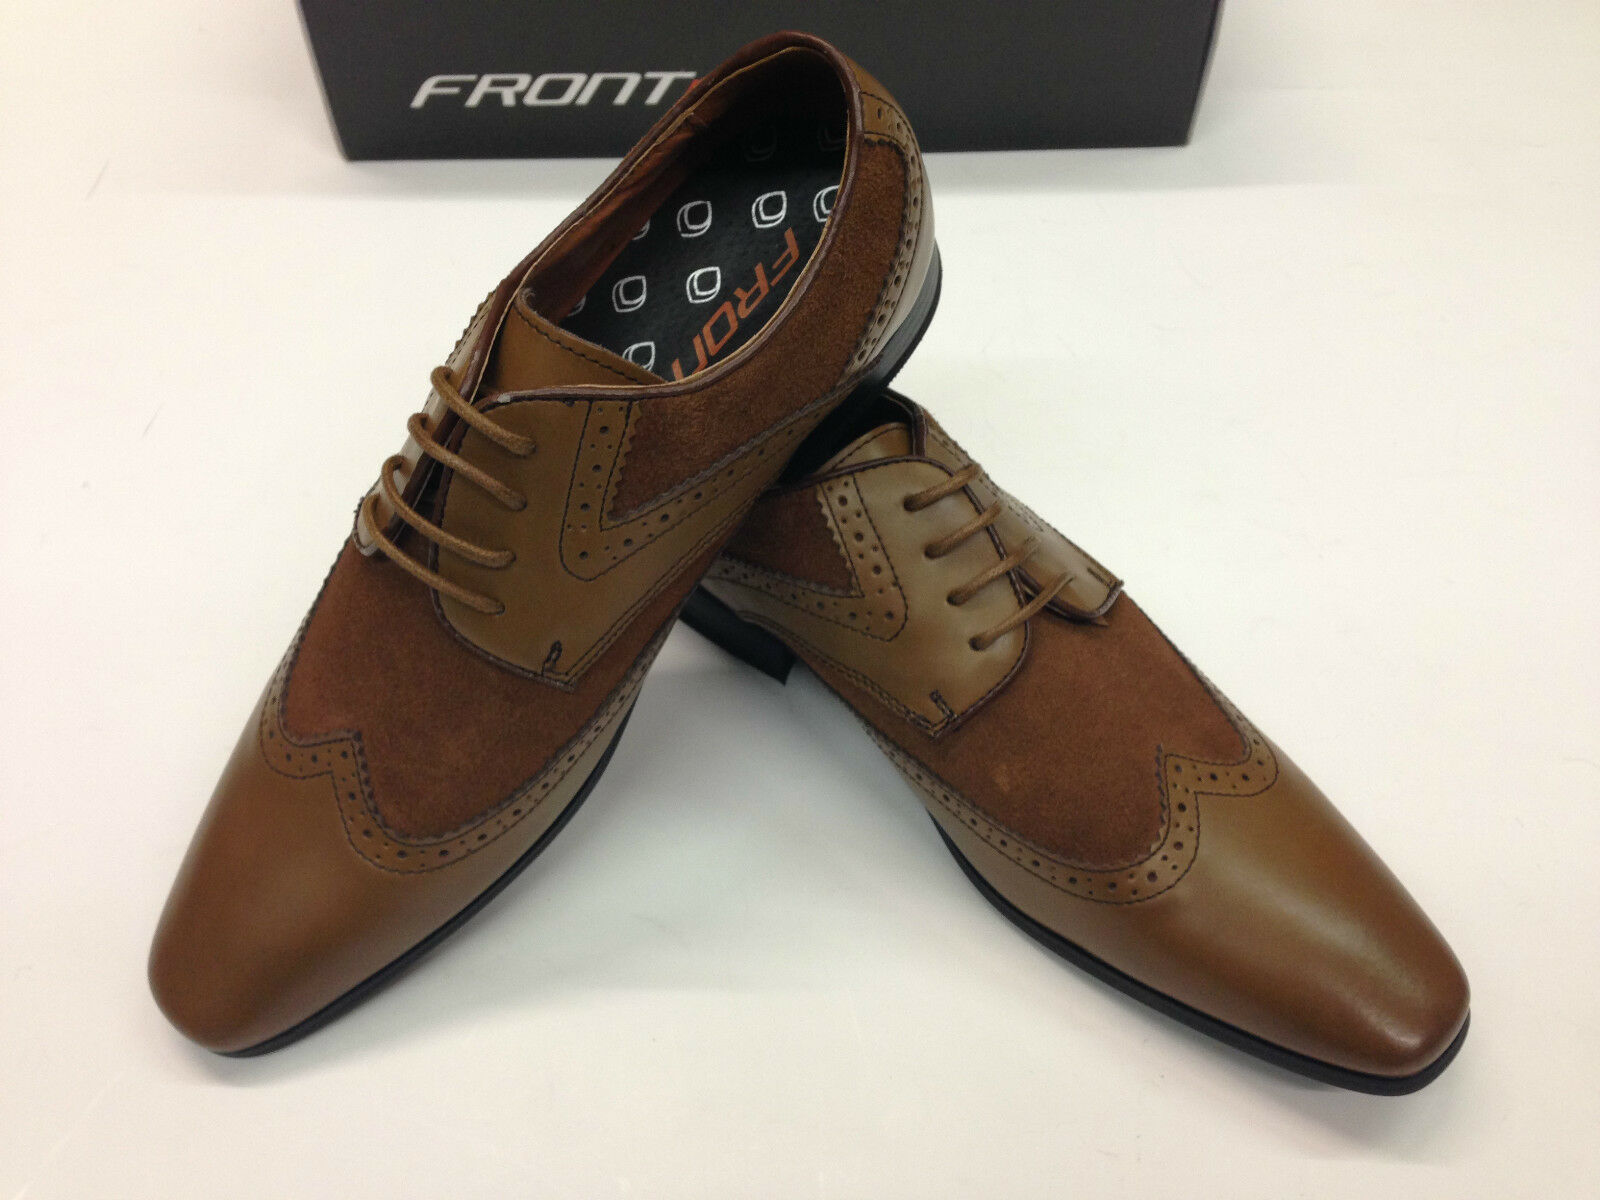 Da Uomo in Pelle Tan Brown Brogues due toni, perfetto con Tweed